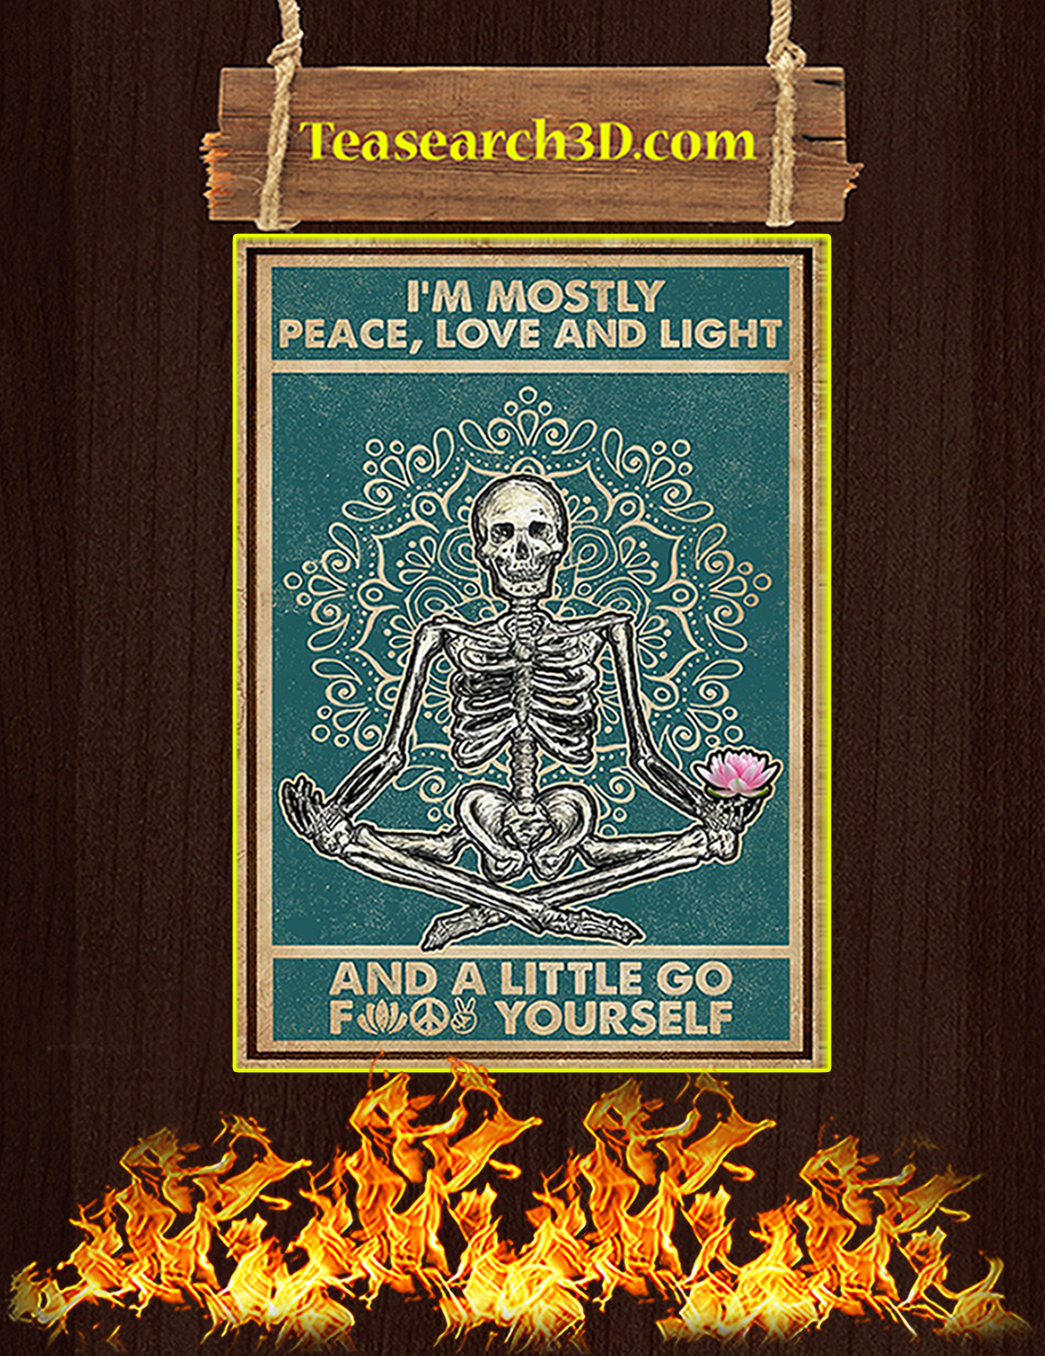 Skeleton yoga I'm mostly peace love and light poster A1